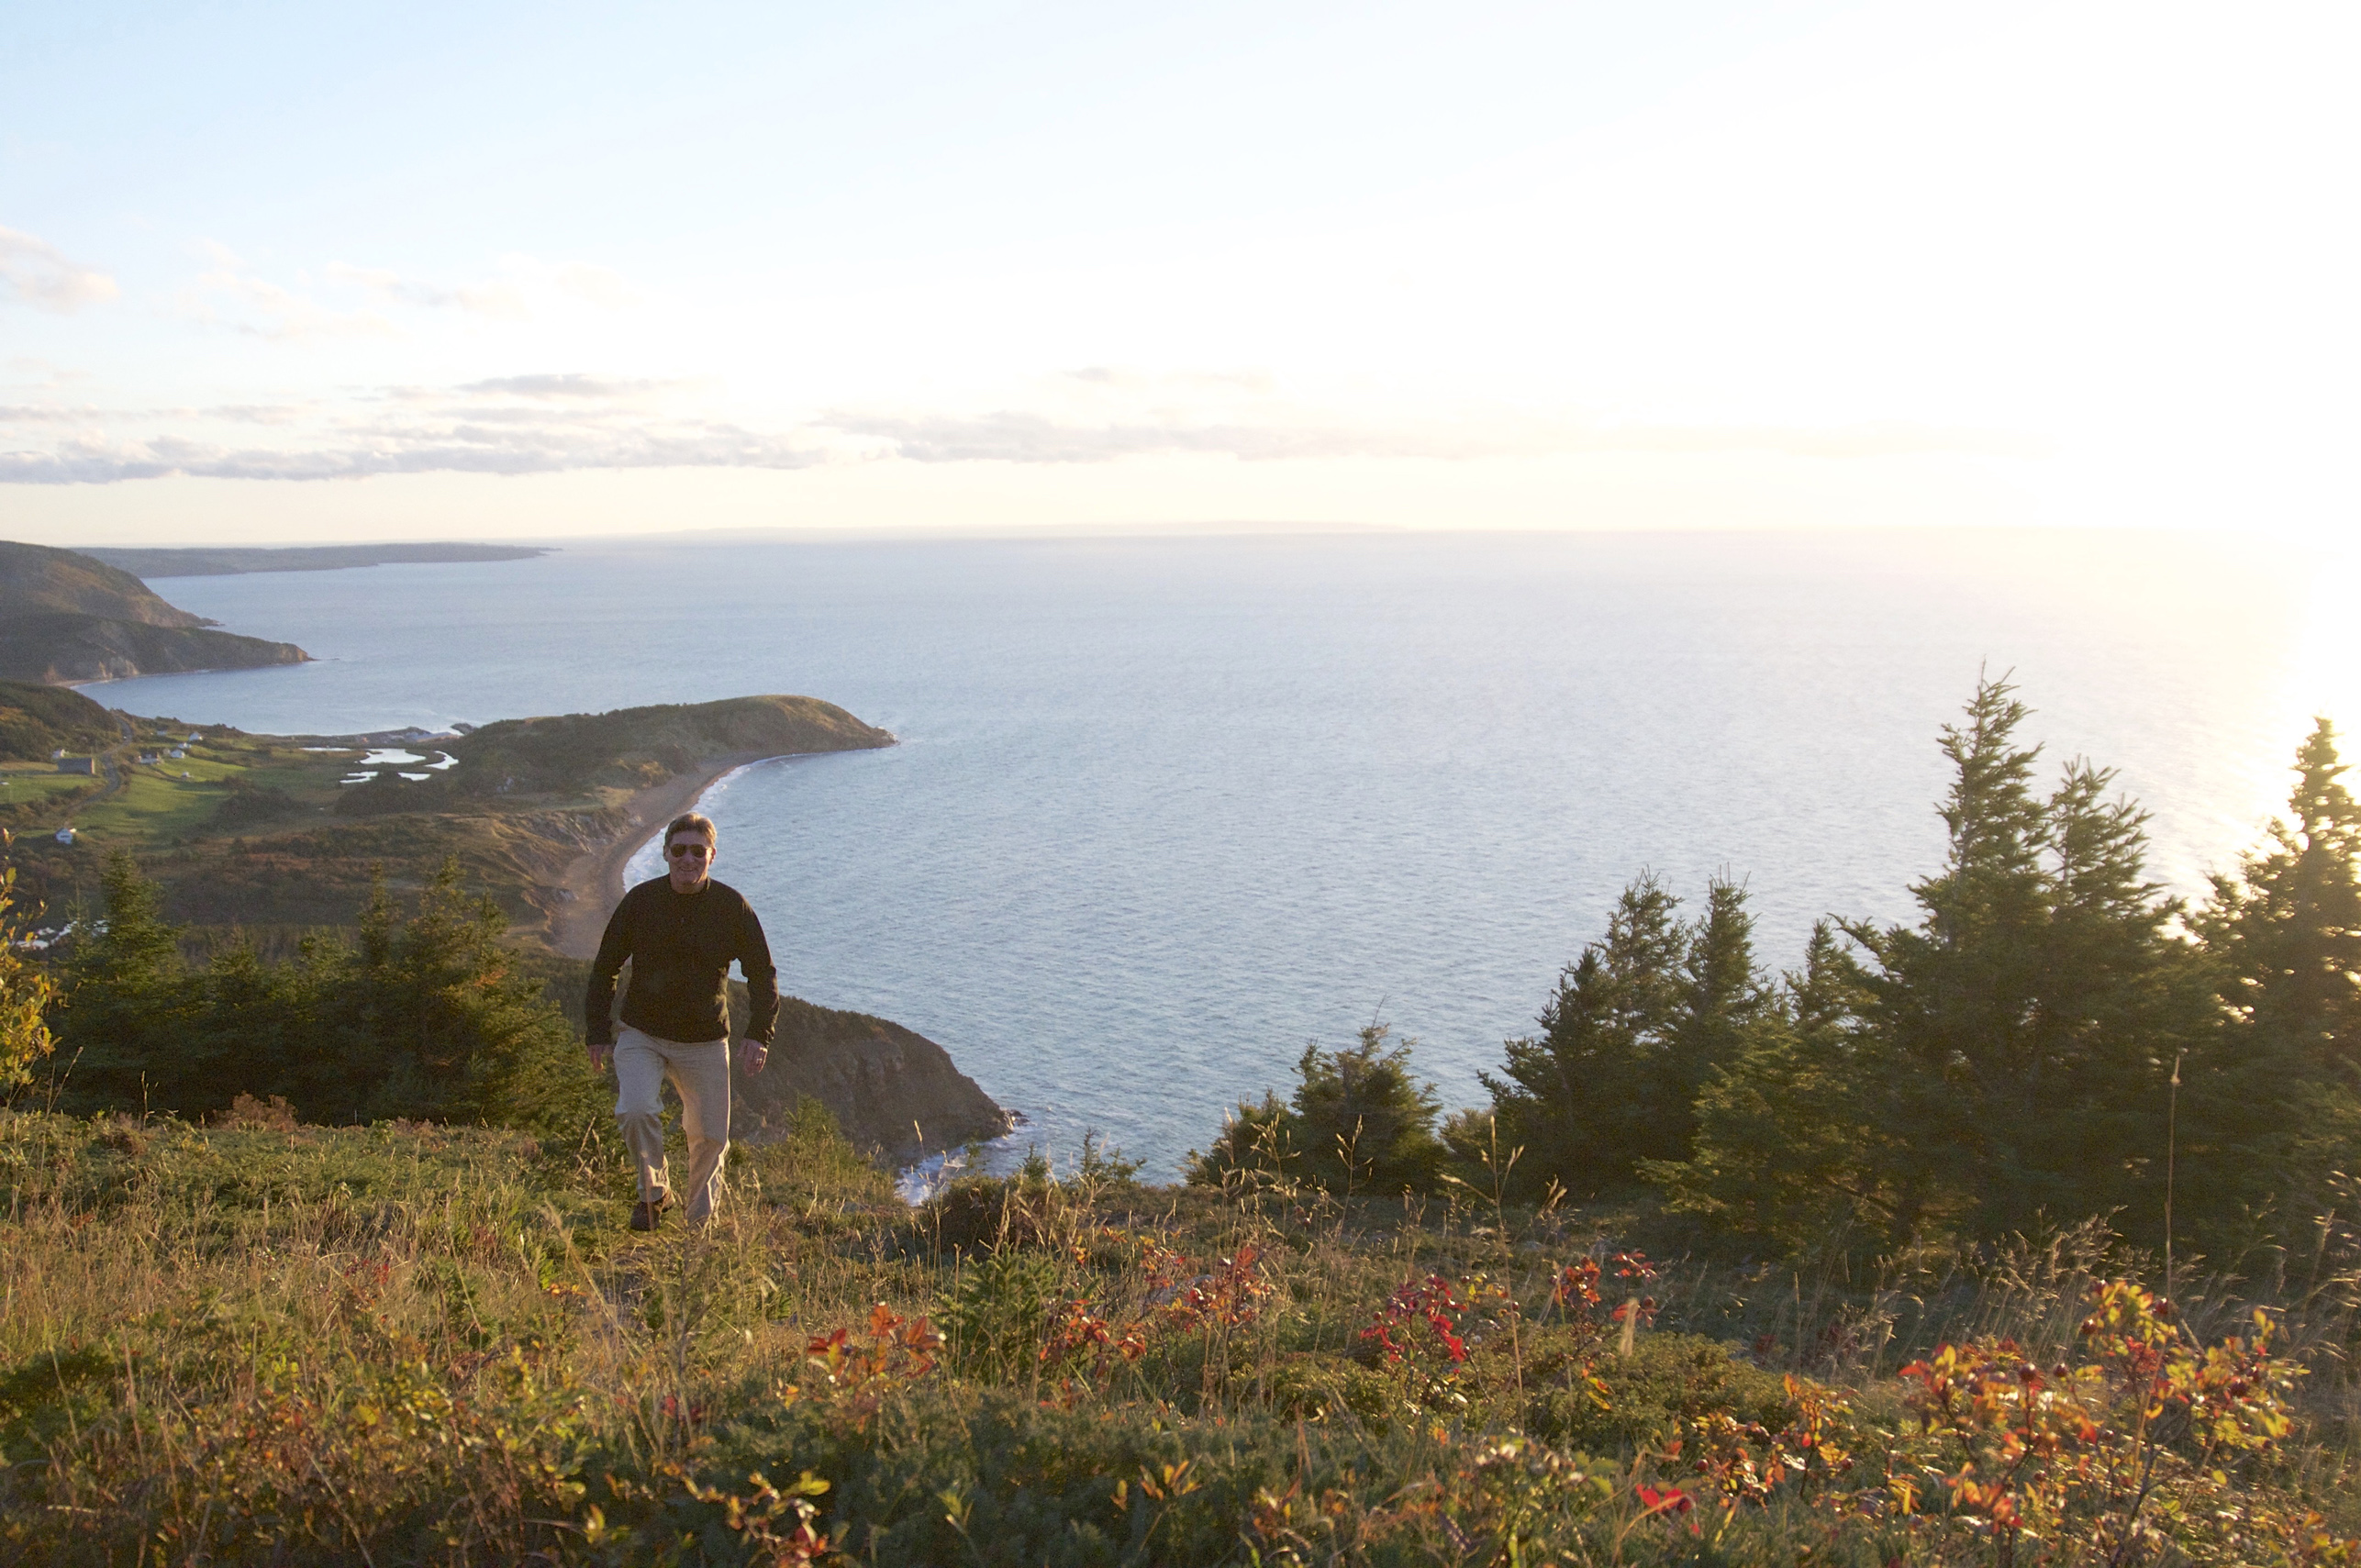 The author discovering the rugged shore at Mabou Mines.